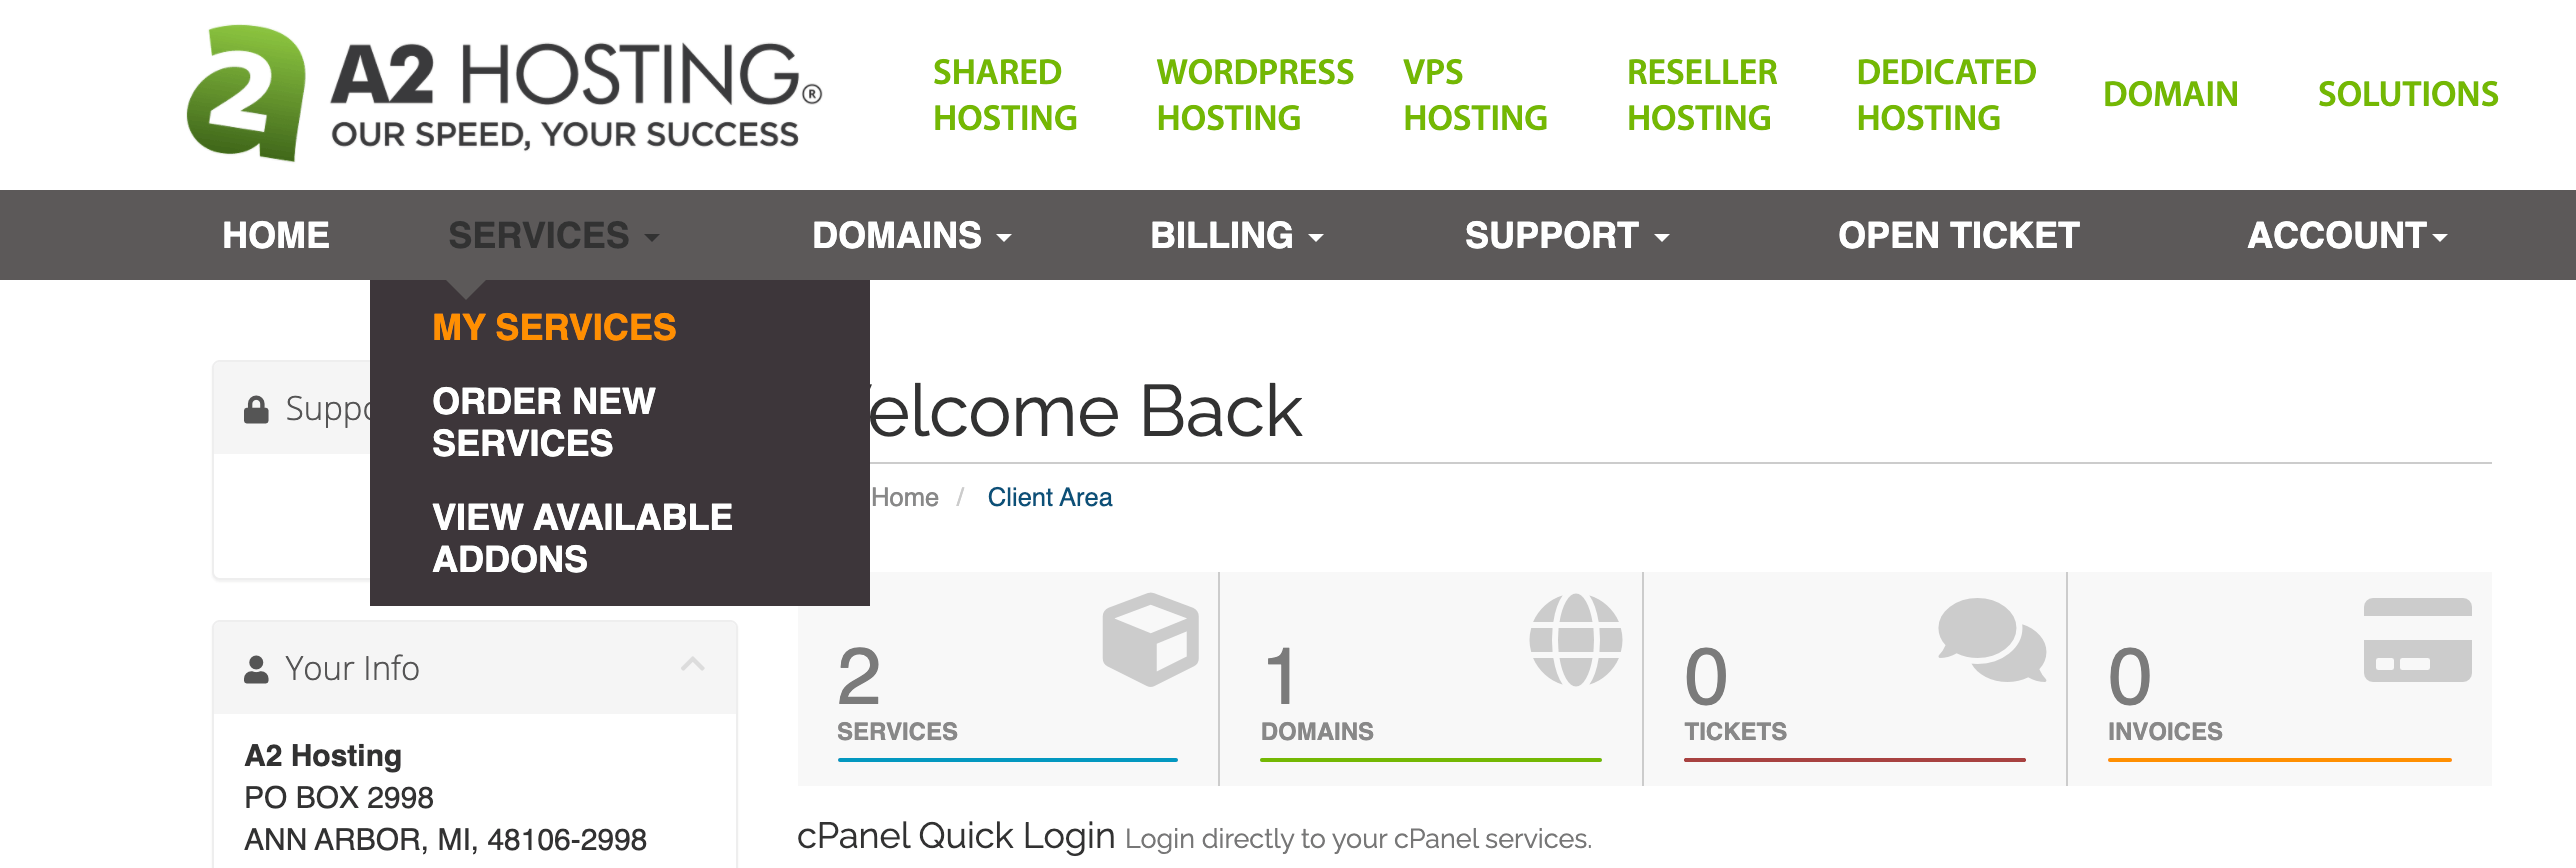 The 'Services' tab of the A2 Hosting Customer Portal menu.